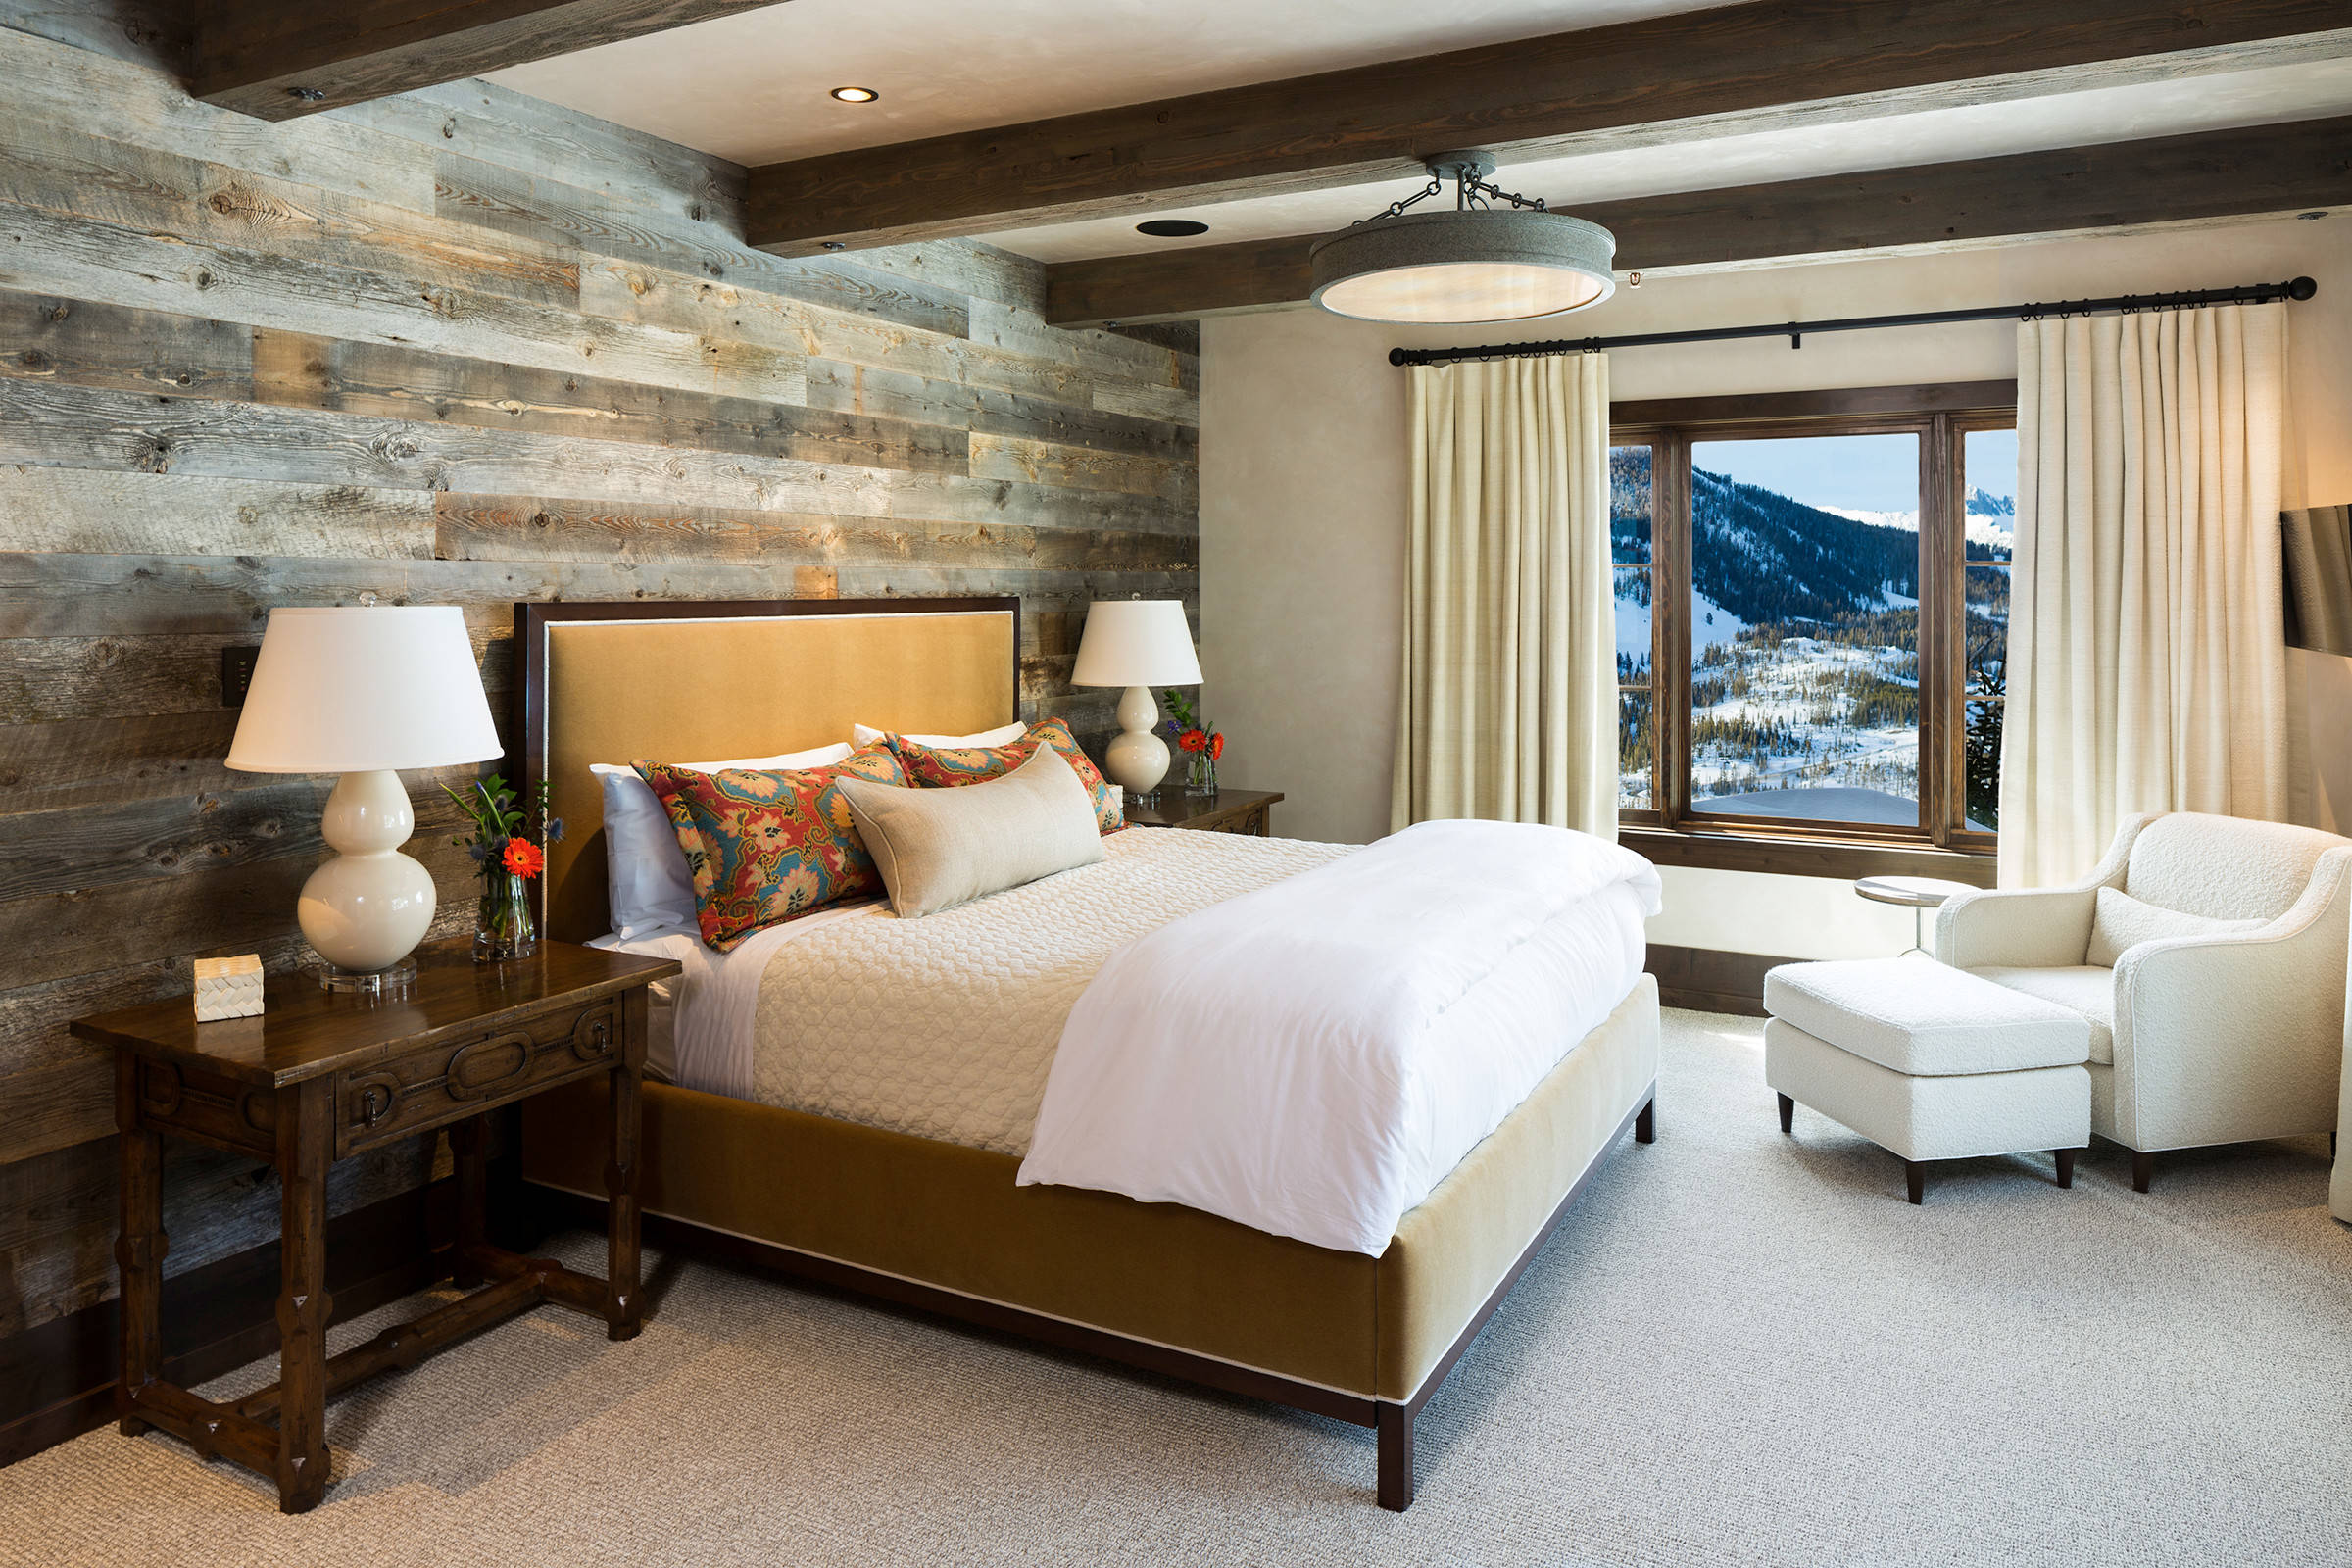 Designer Bedroom Ideas 15 Wicked Rustic Bedroom Designs That Will Make You Want Them